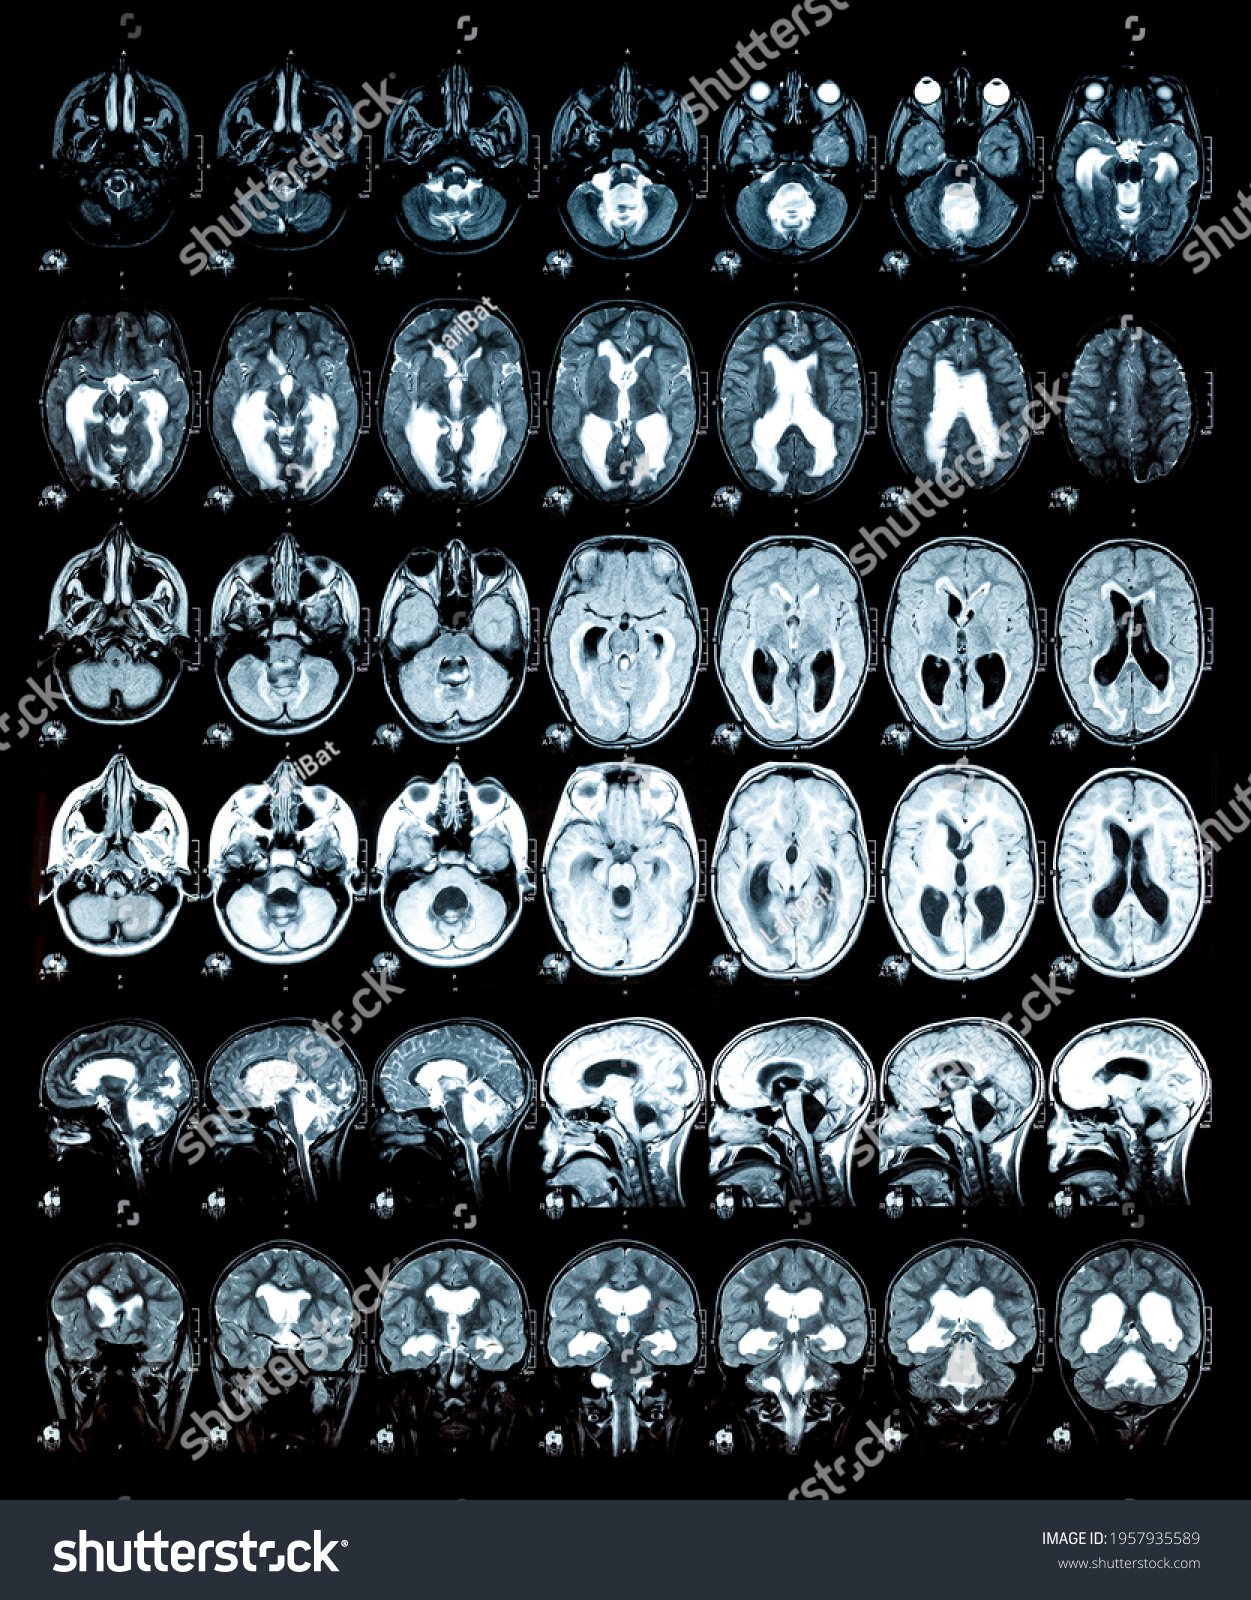 Real MRI scans of the head and brain. Magnetic resonance image scan of the brain showed obstructive triventricular hydrocephalus. Background on theme of science, medicine, neurology. #1957935589